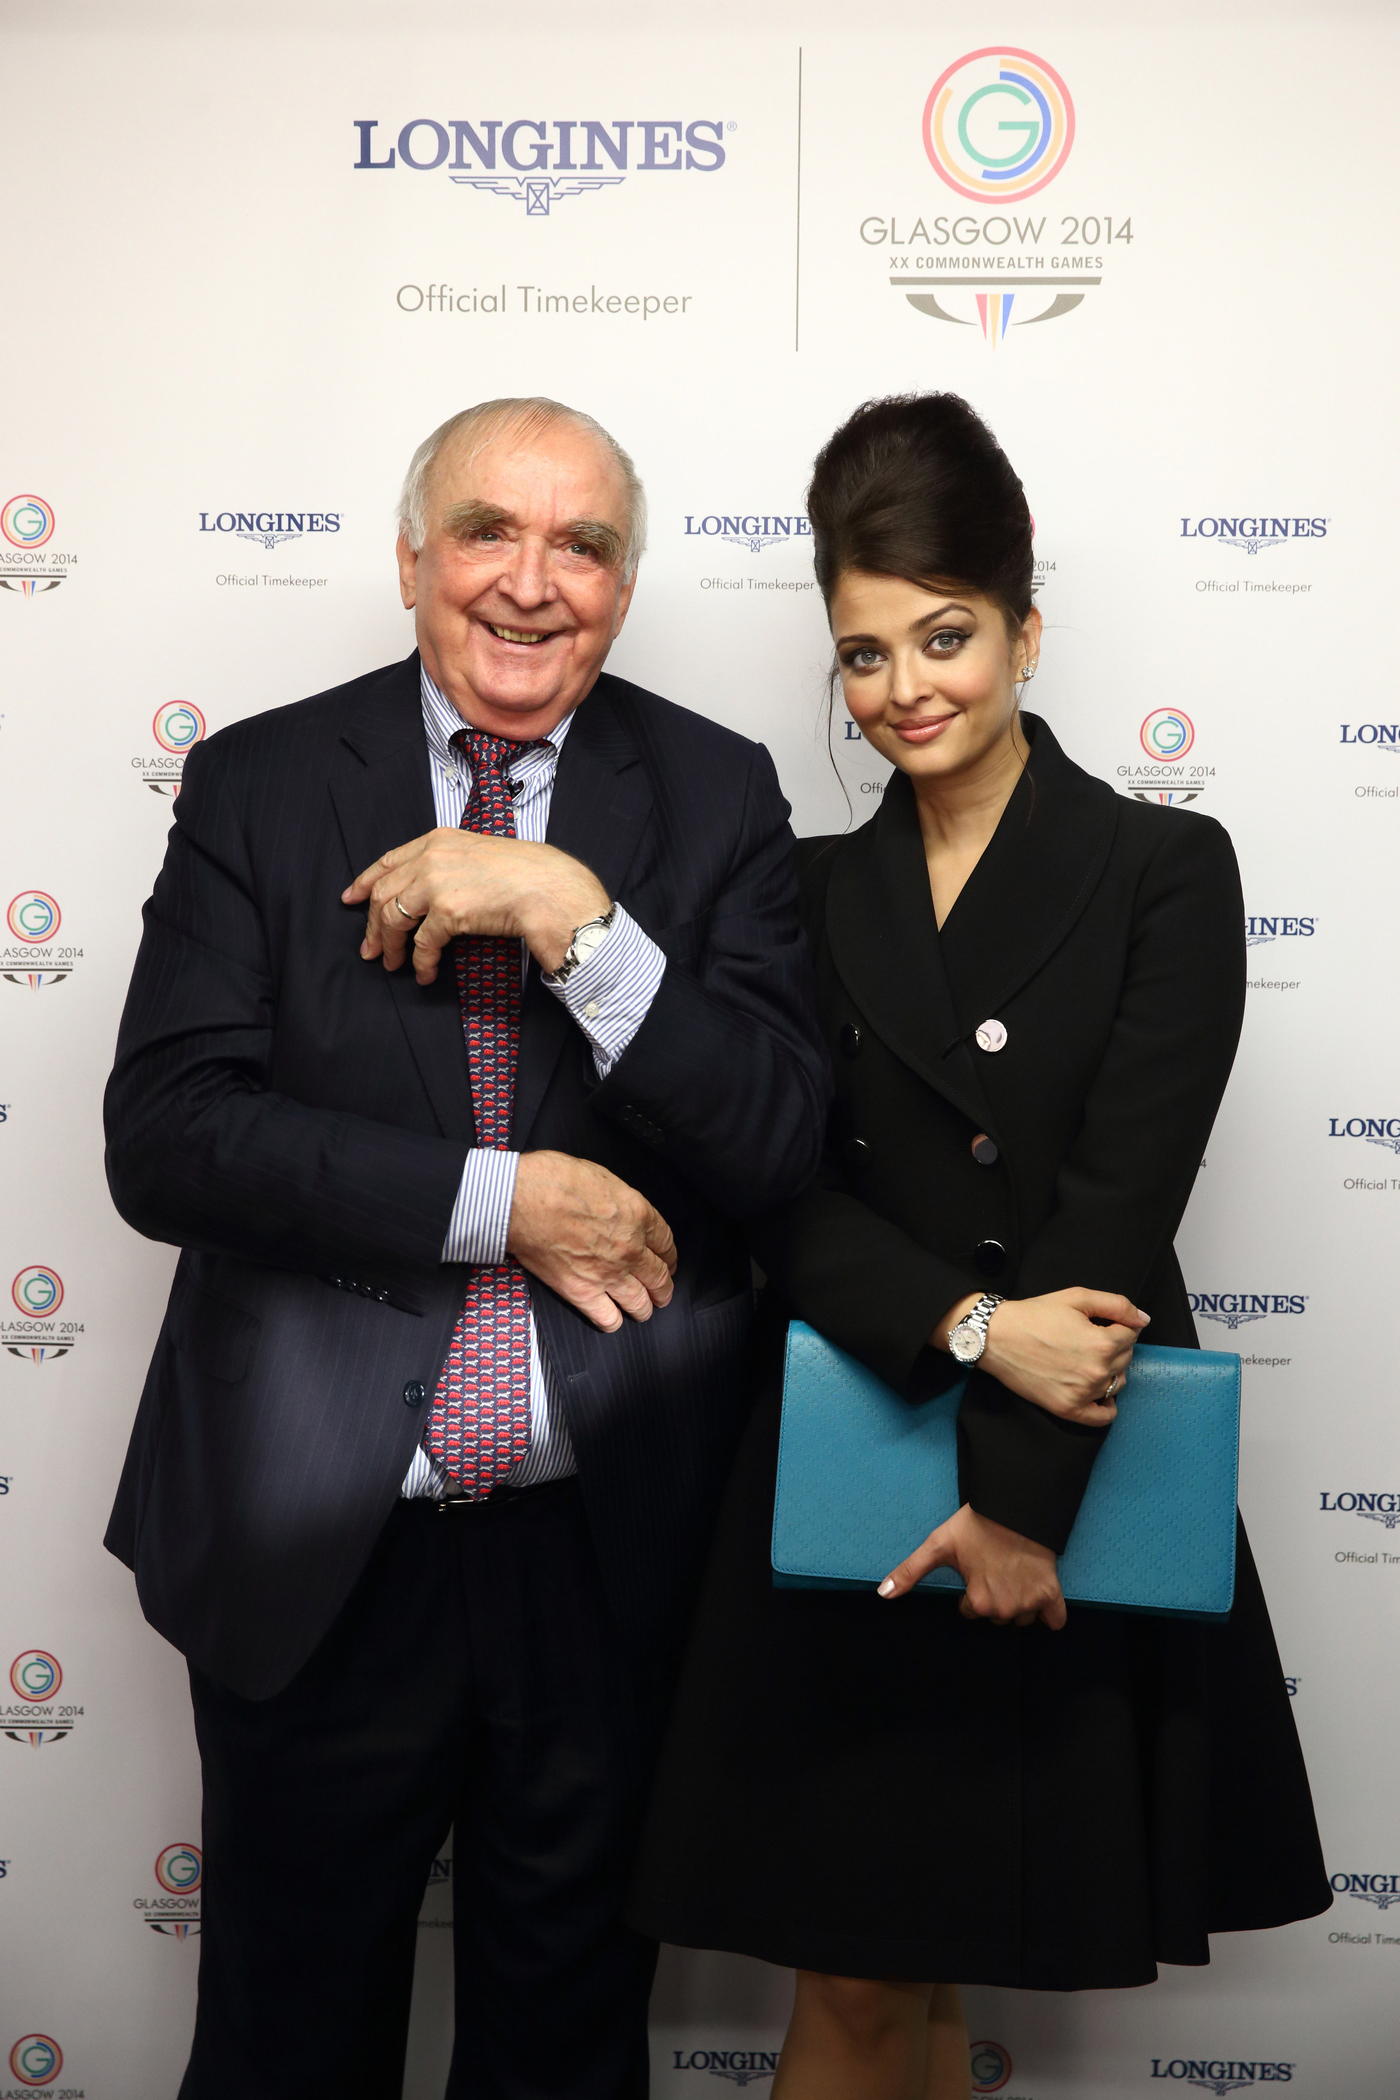 Longines Commonwealth Games Event: Longines Ambassador of Elegance Aishwarya Rai at the Opening Ceremony of Glasgow 2014, the XX Commonwealth Games 1